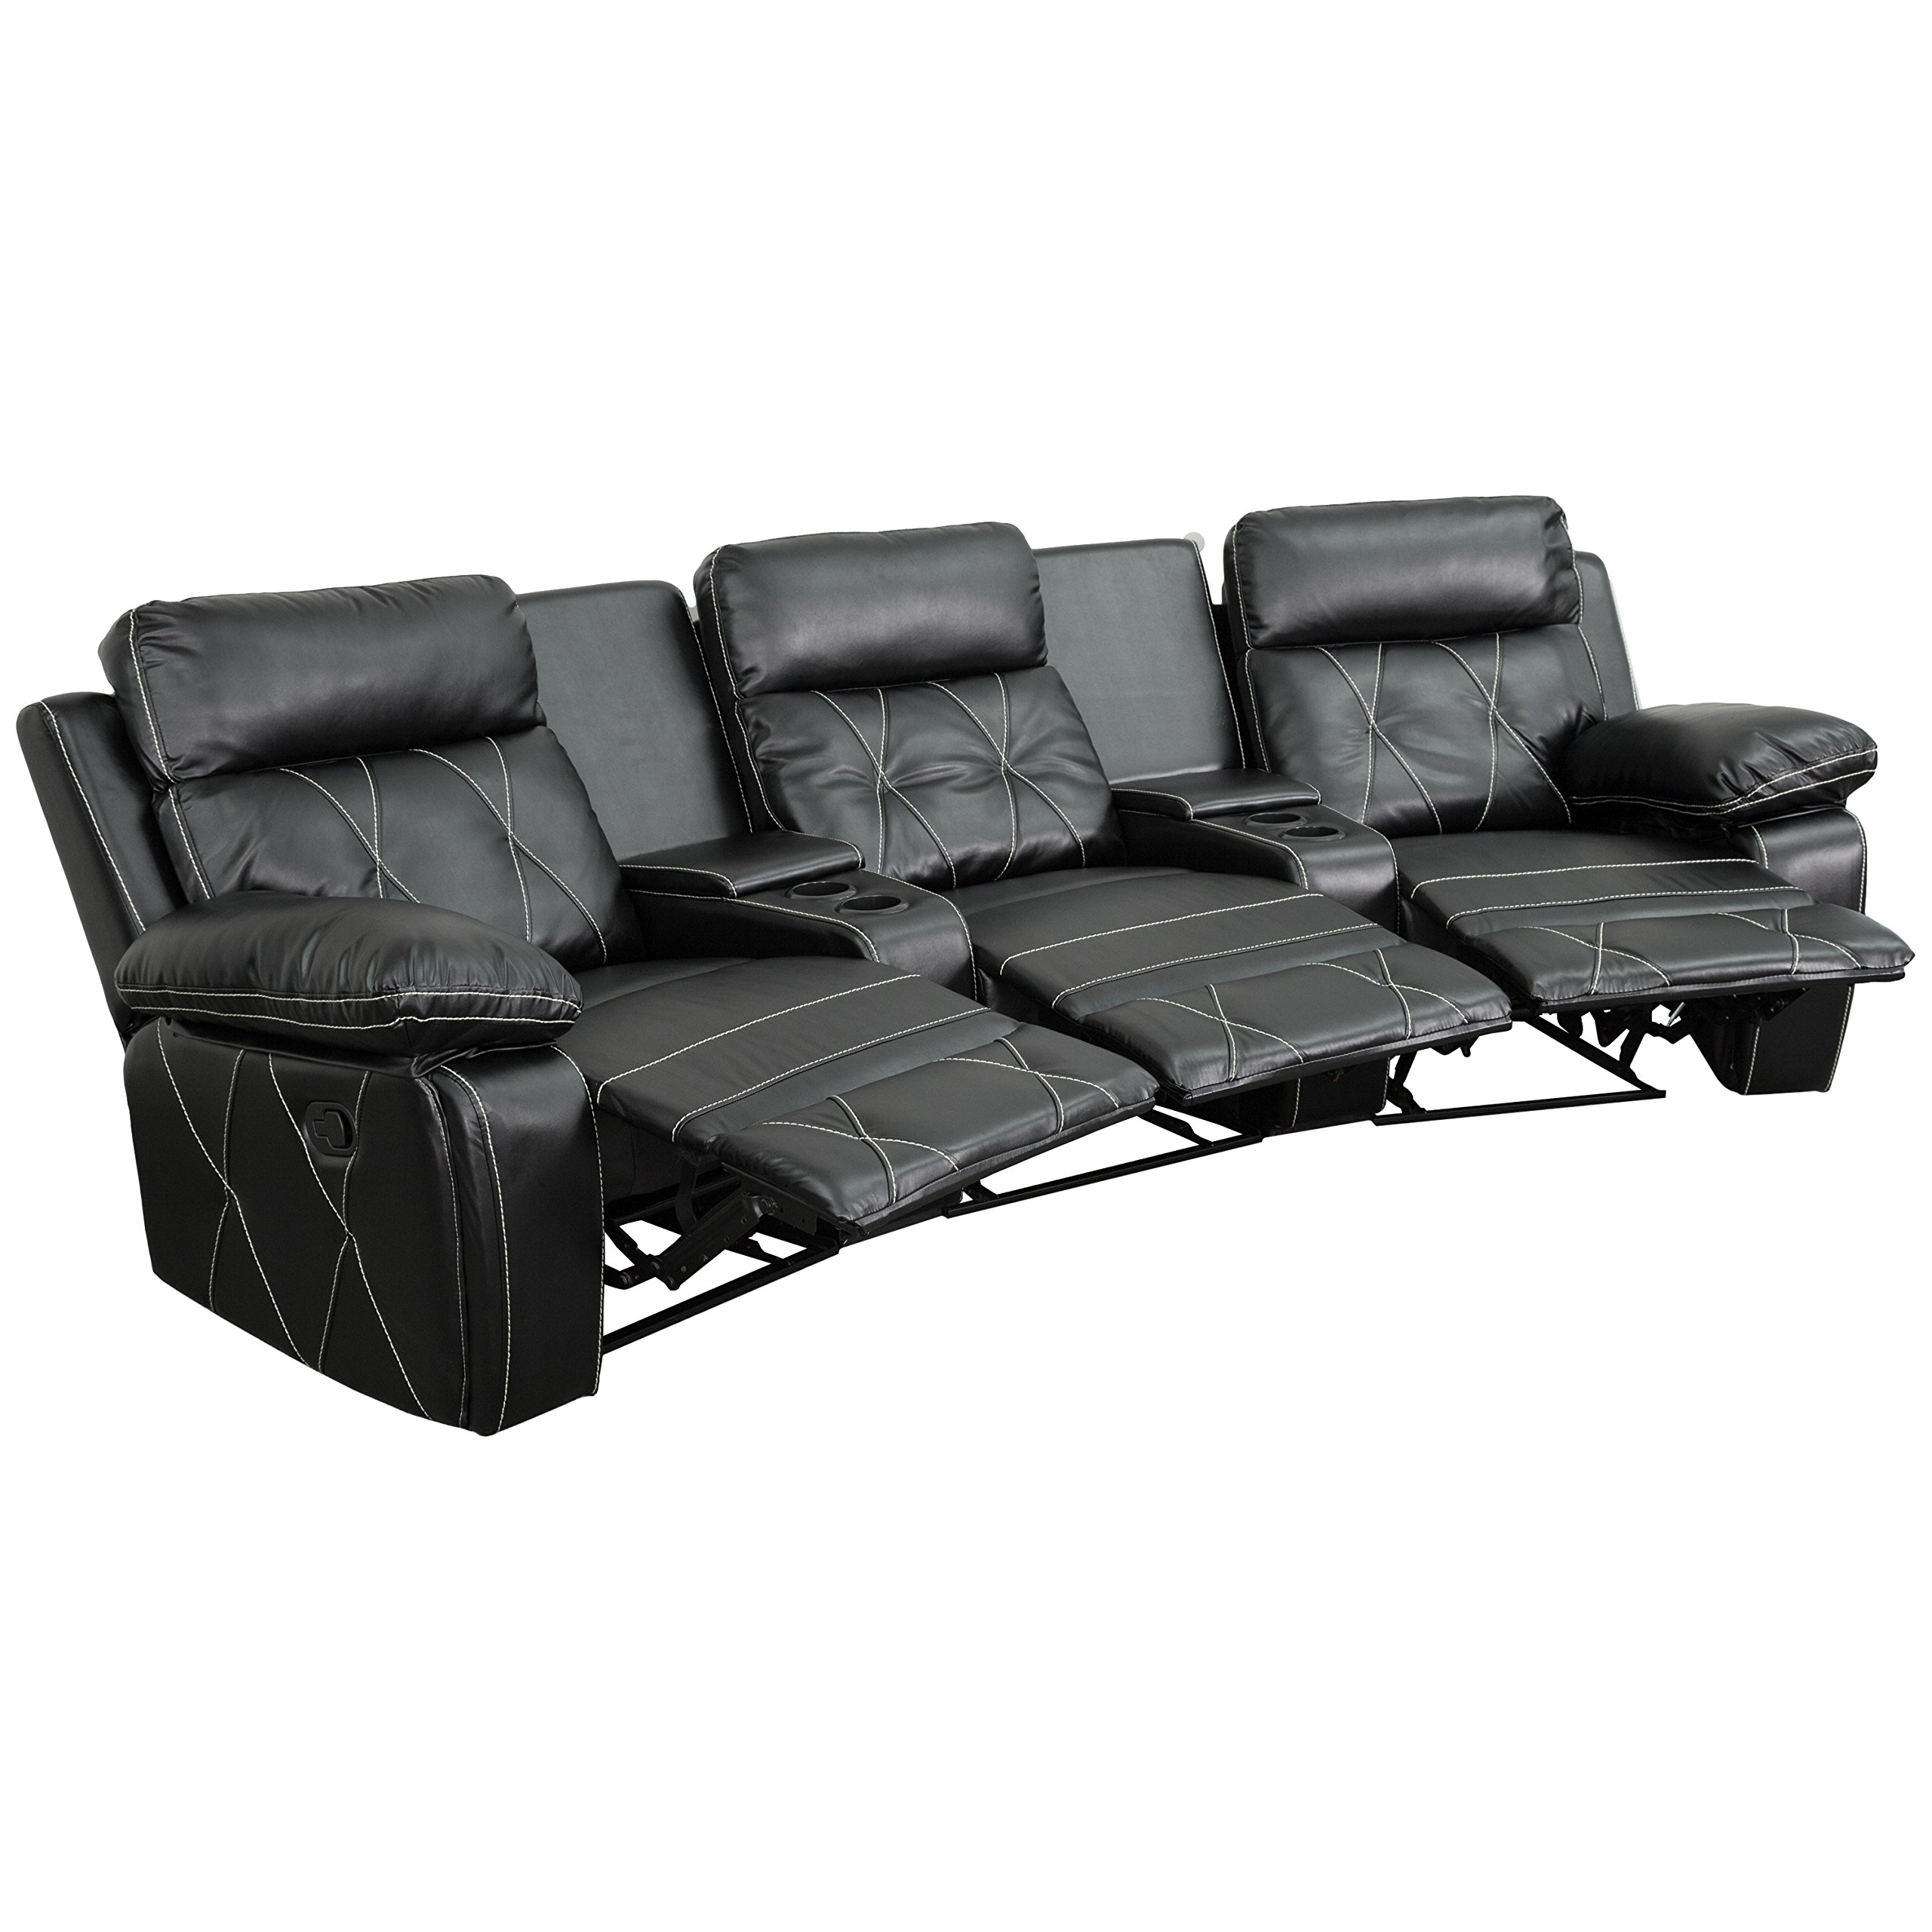 Flash Furniture Reel Comfort Series 3-Seat Reclining Black Leather Theater Seating Unit with Curved Cup Holders by Flash Furniture